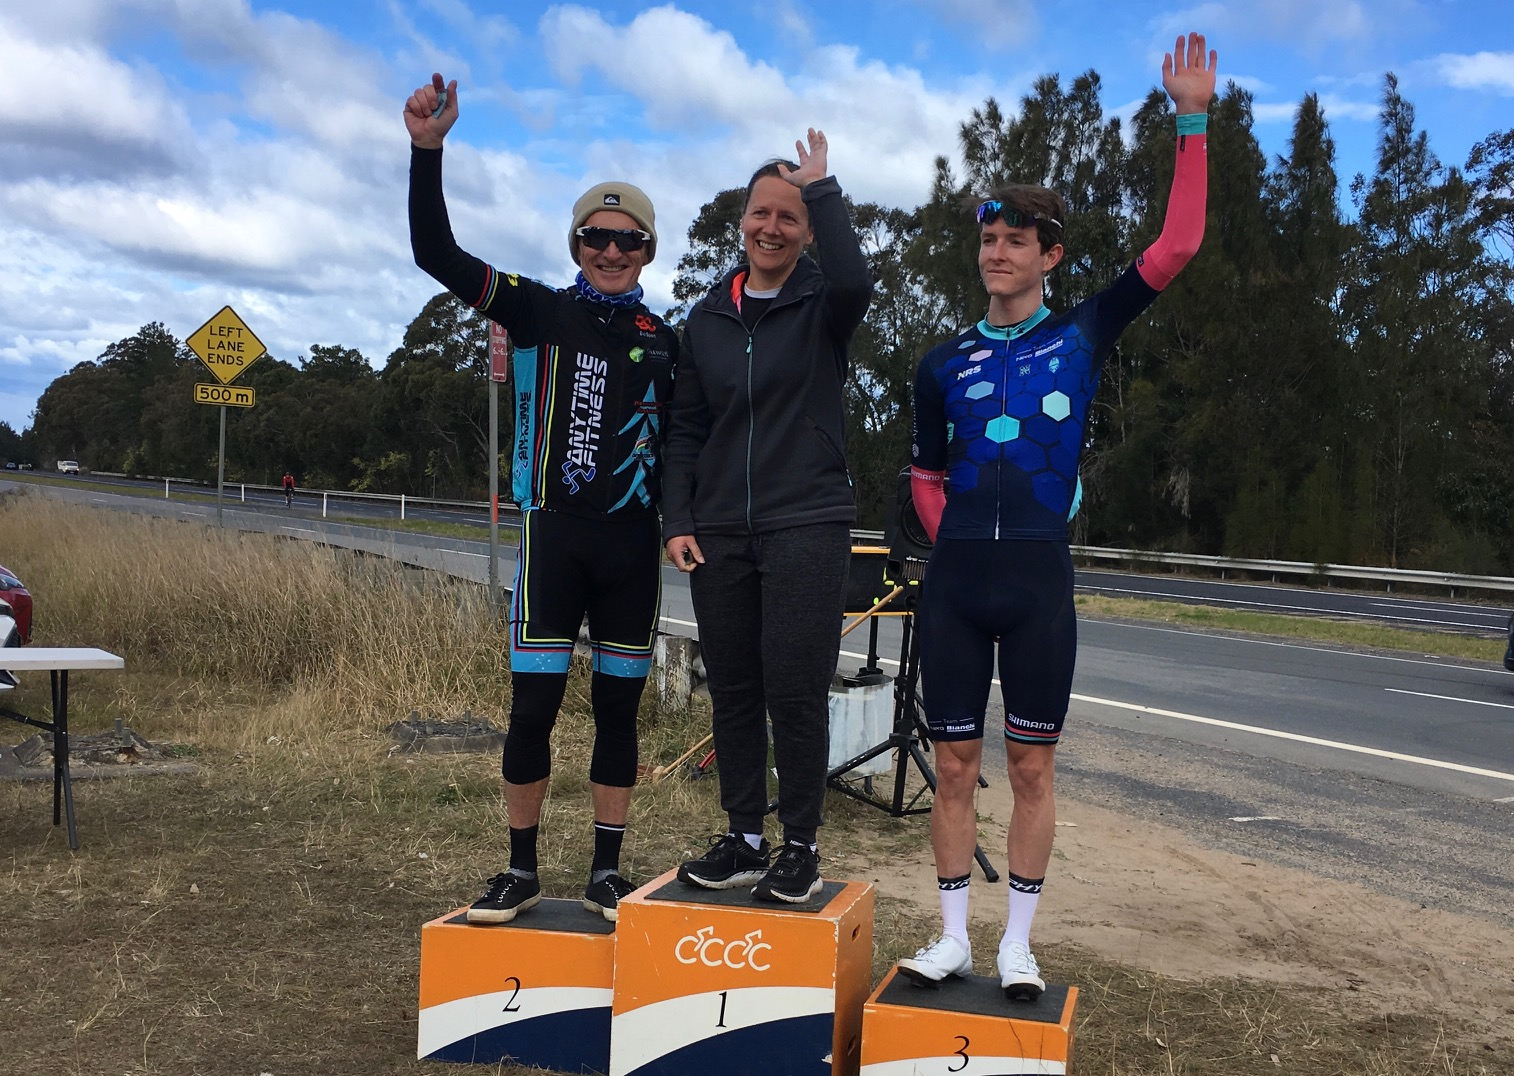 Calga 100k Handicap @ 11 August - Eric Dole took 2nd in very cold & windy conditions